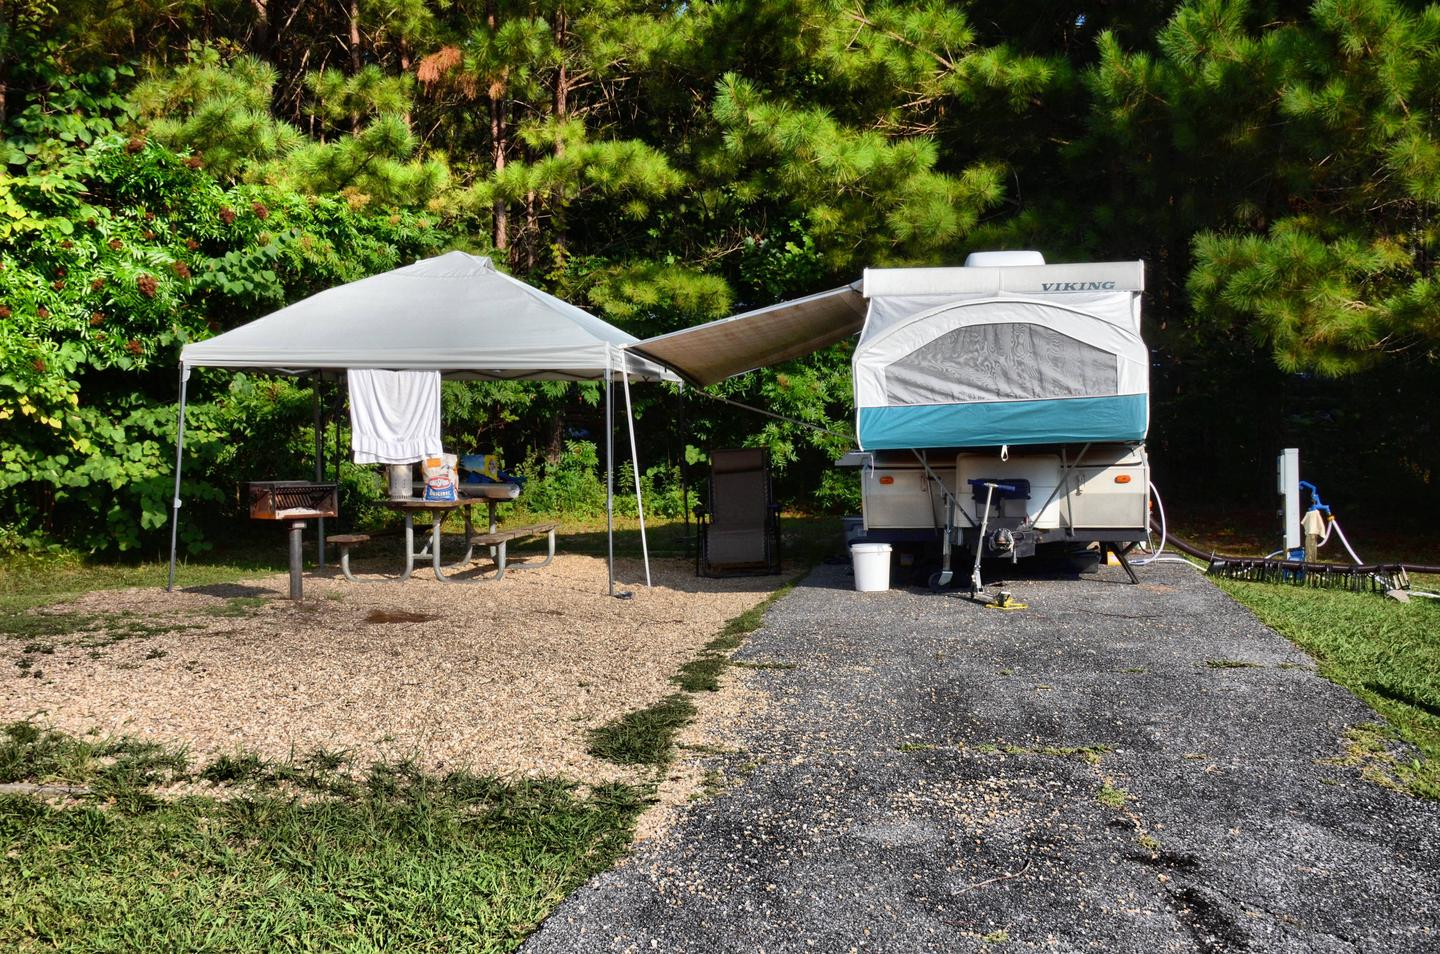 Awning-side clearance.Payne Campground, campsite 006.